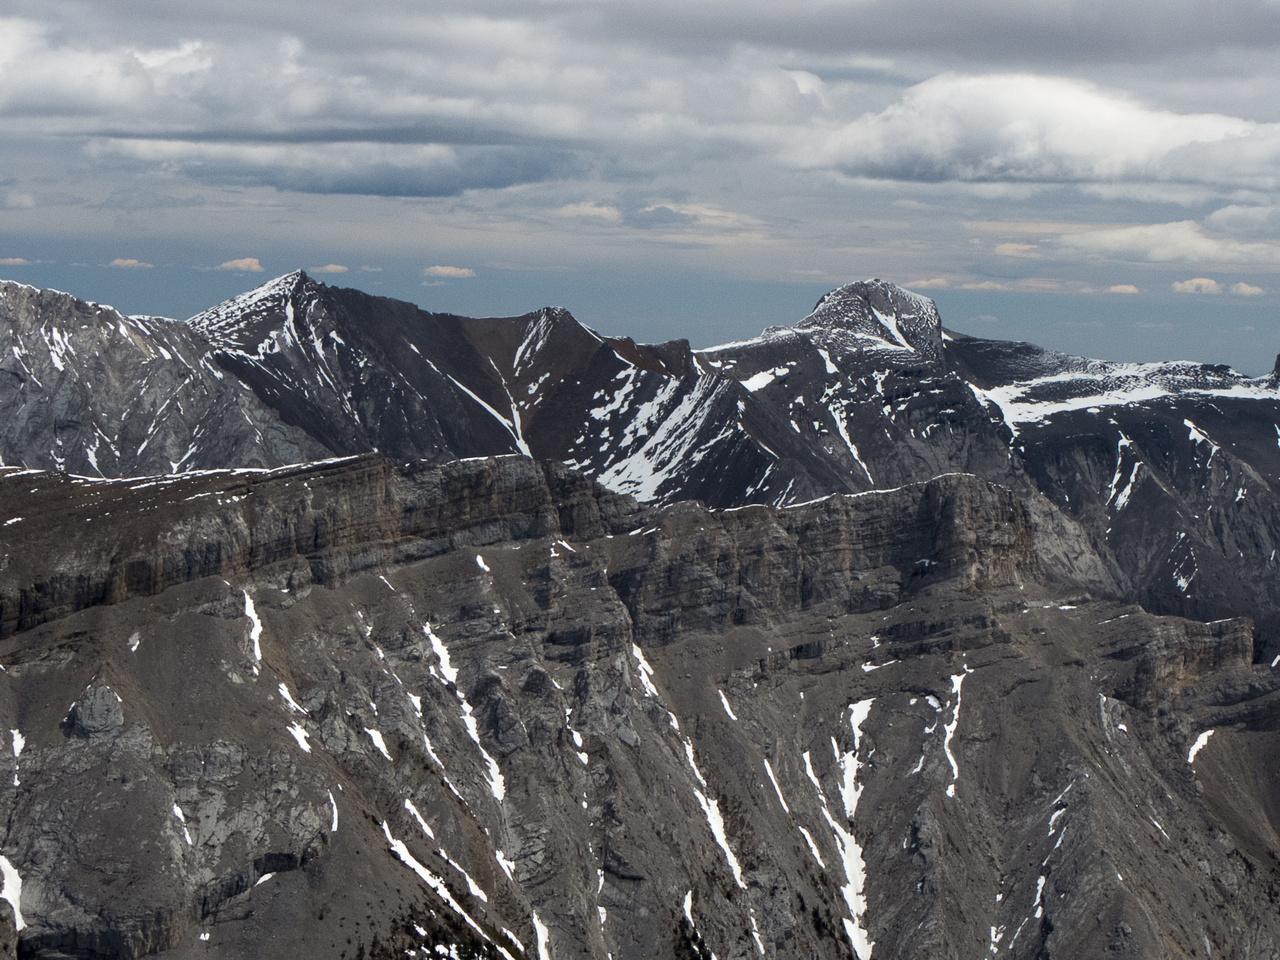 Mount Townsend at right.